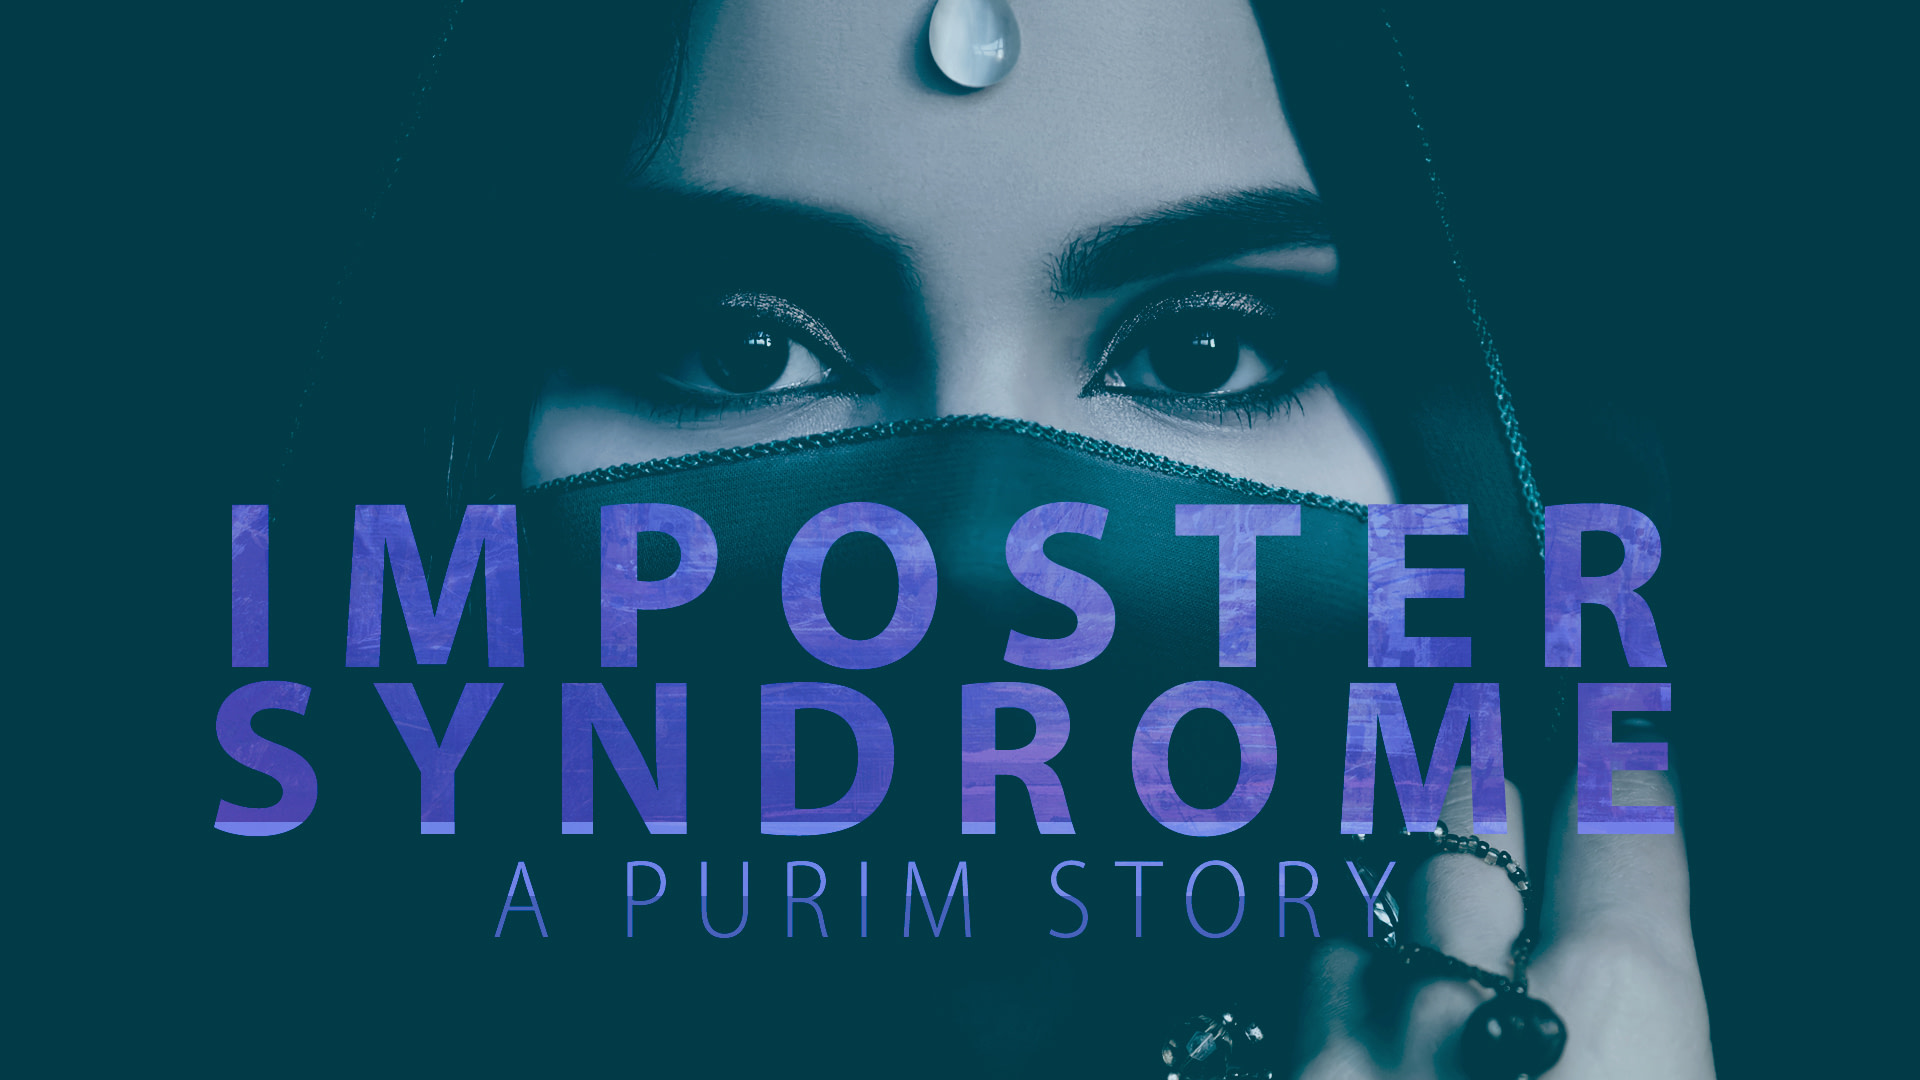 IMPOSTER SYNDROME – A Purim Story